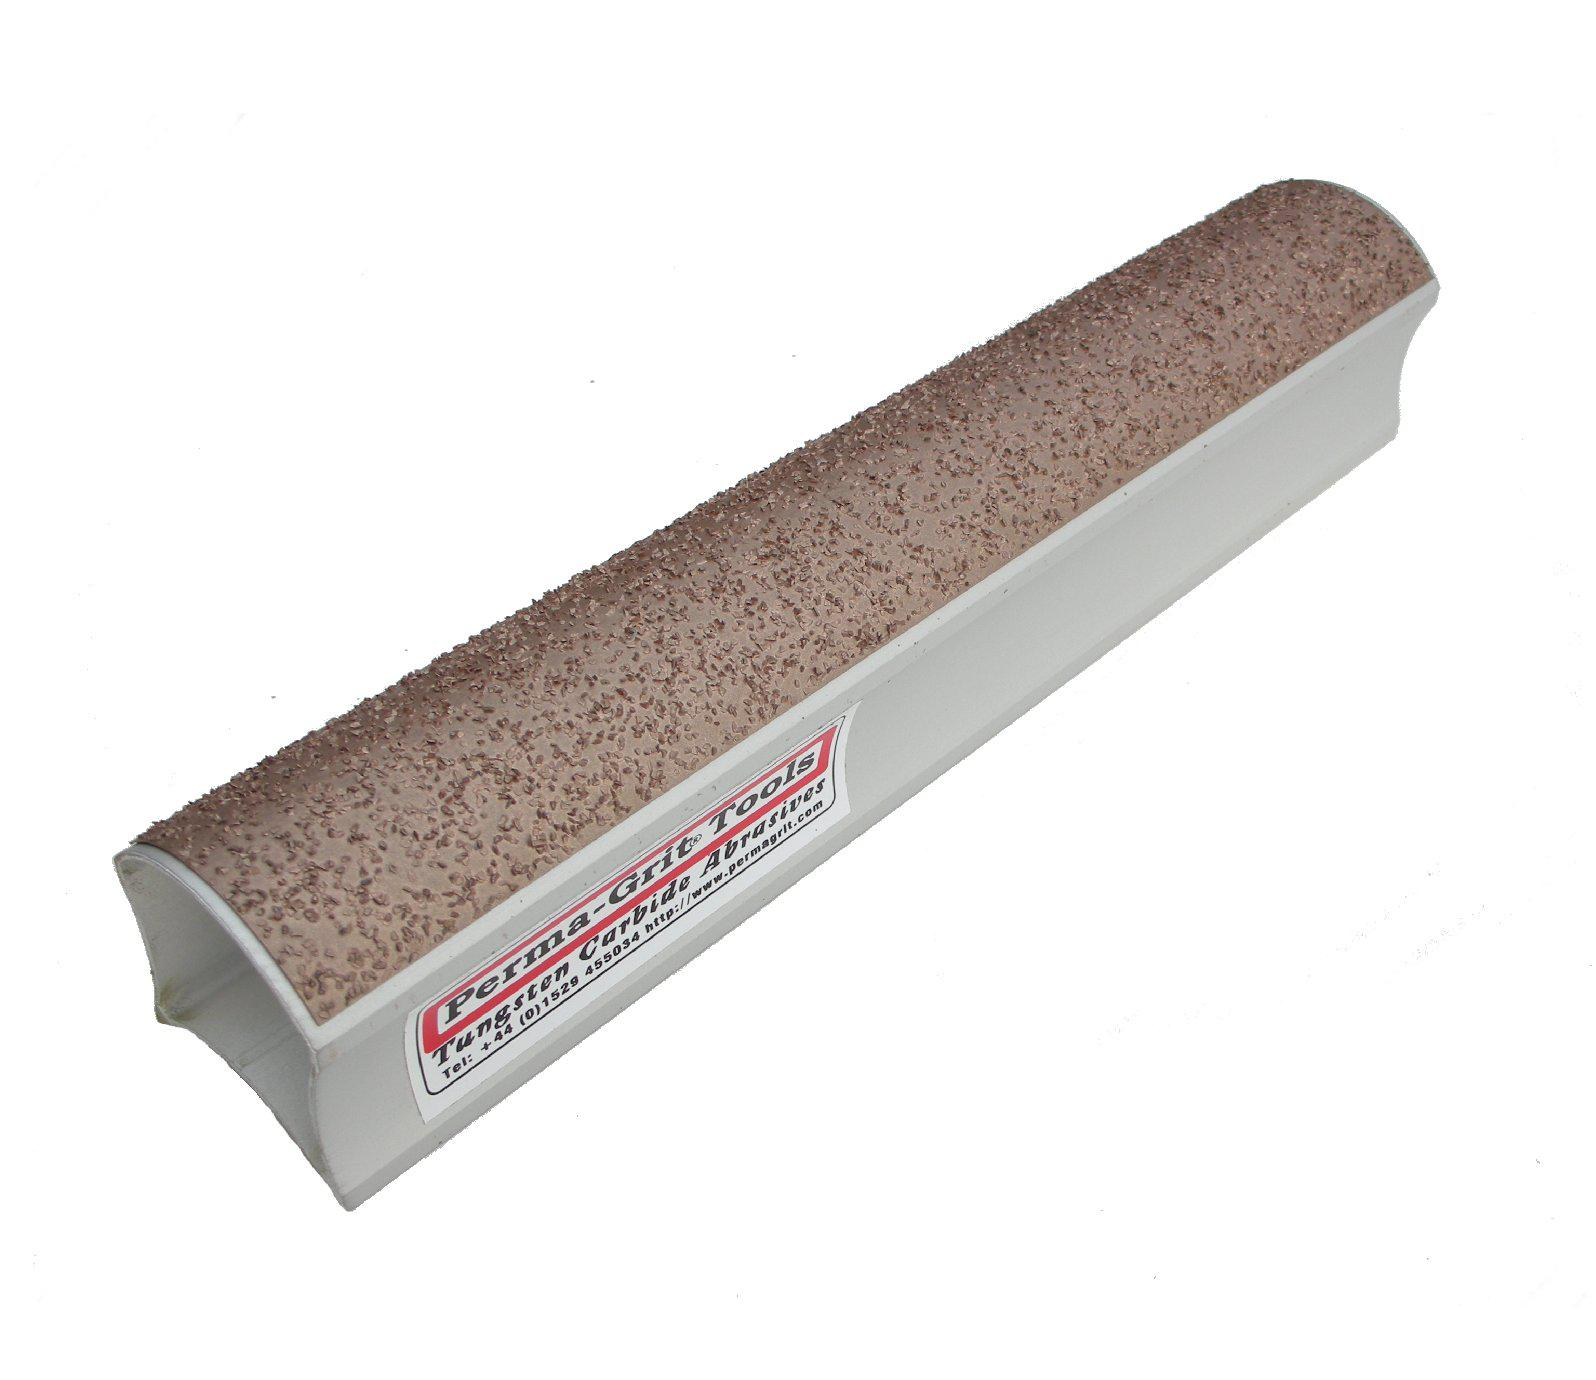 Contour Block XXCoarse 280 x 51 mm